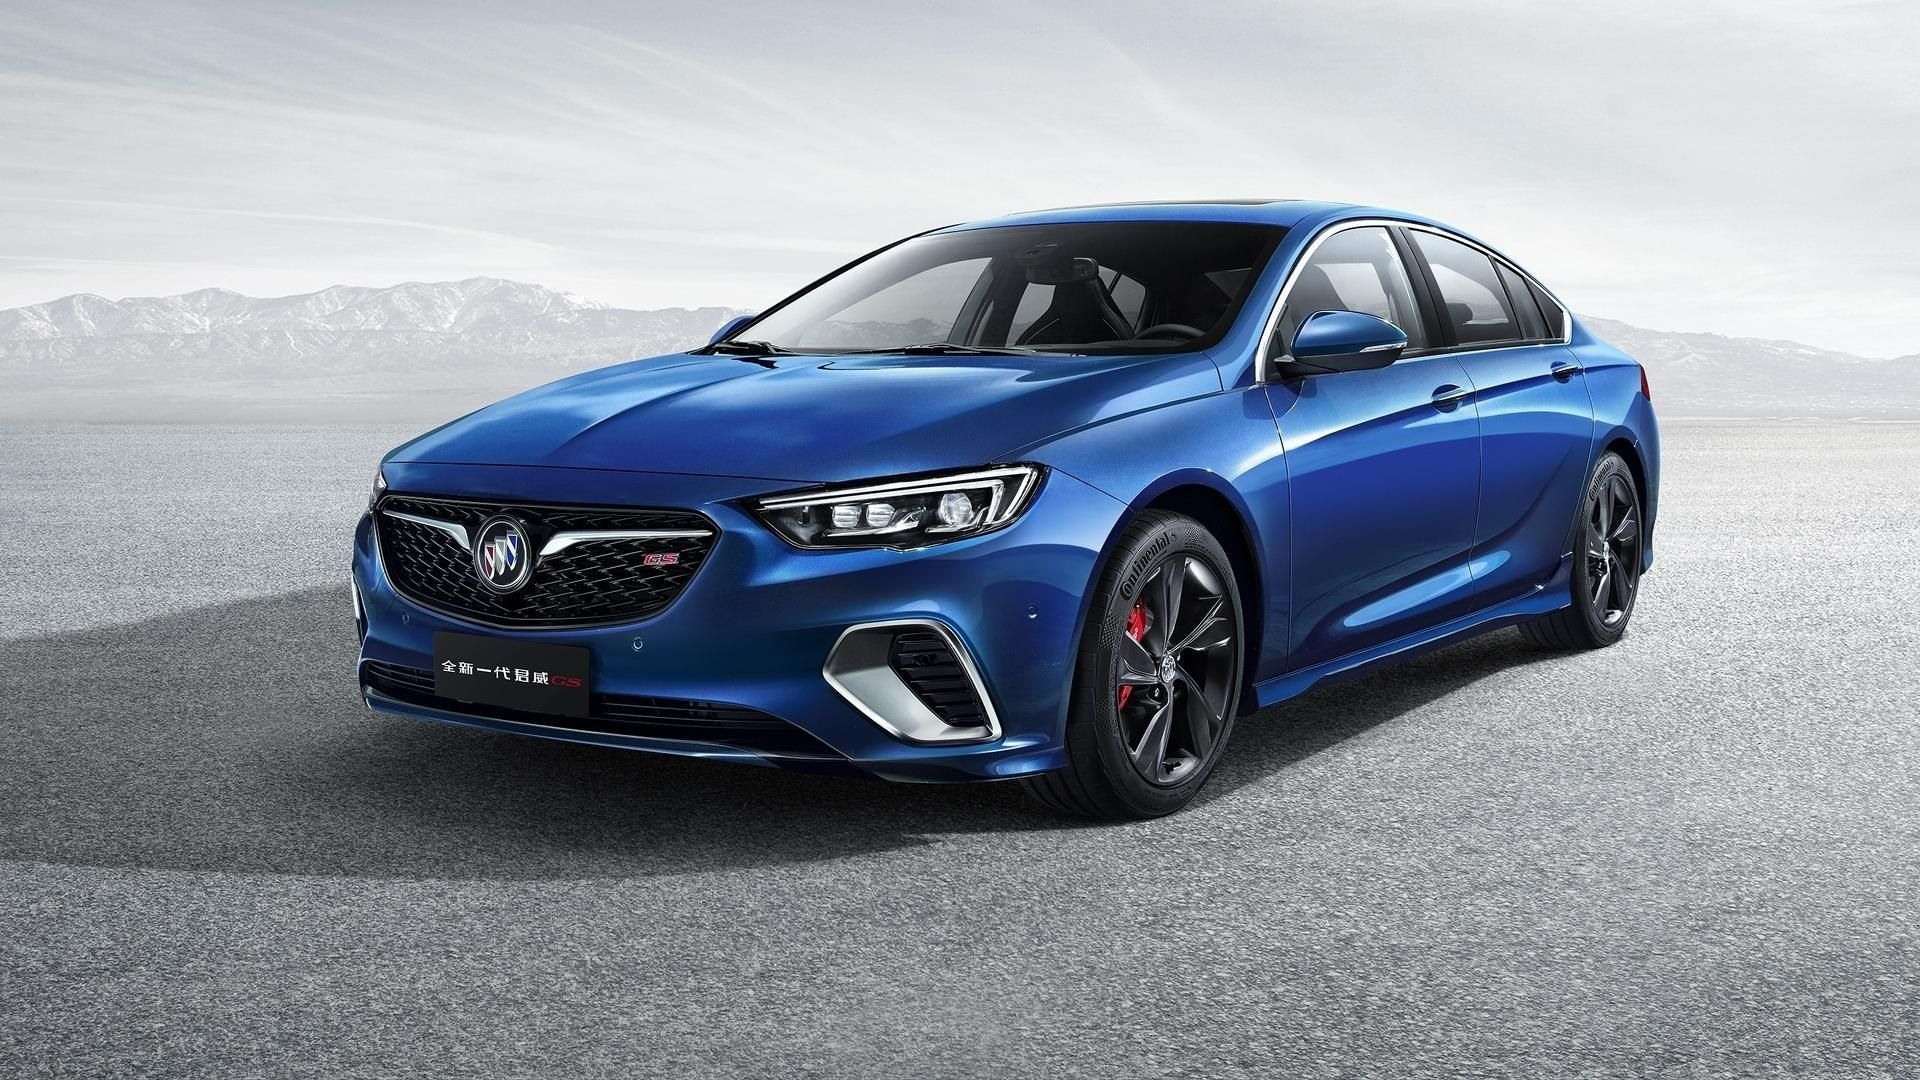 94 New 2020 Buick Regal Gs Coupe Exterior and Interior